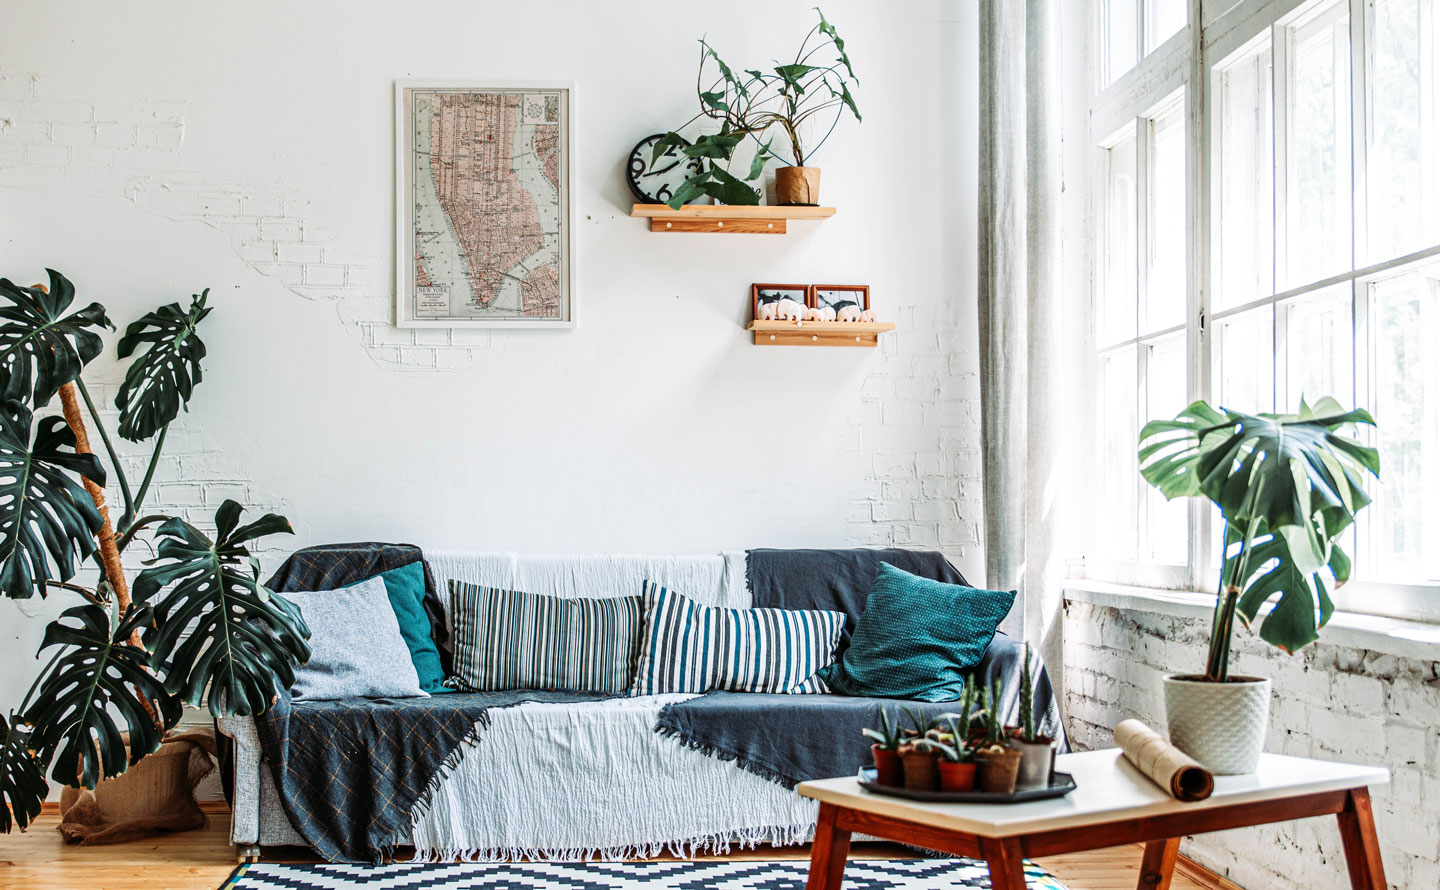 Travel inspired decor ideas to bring the world to your home